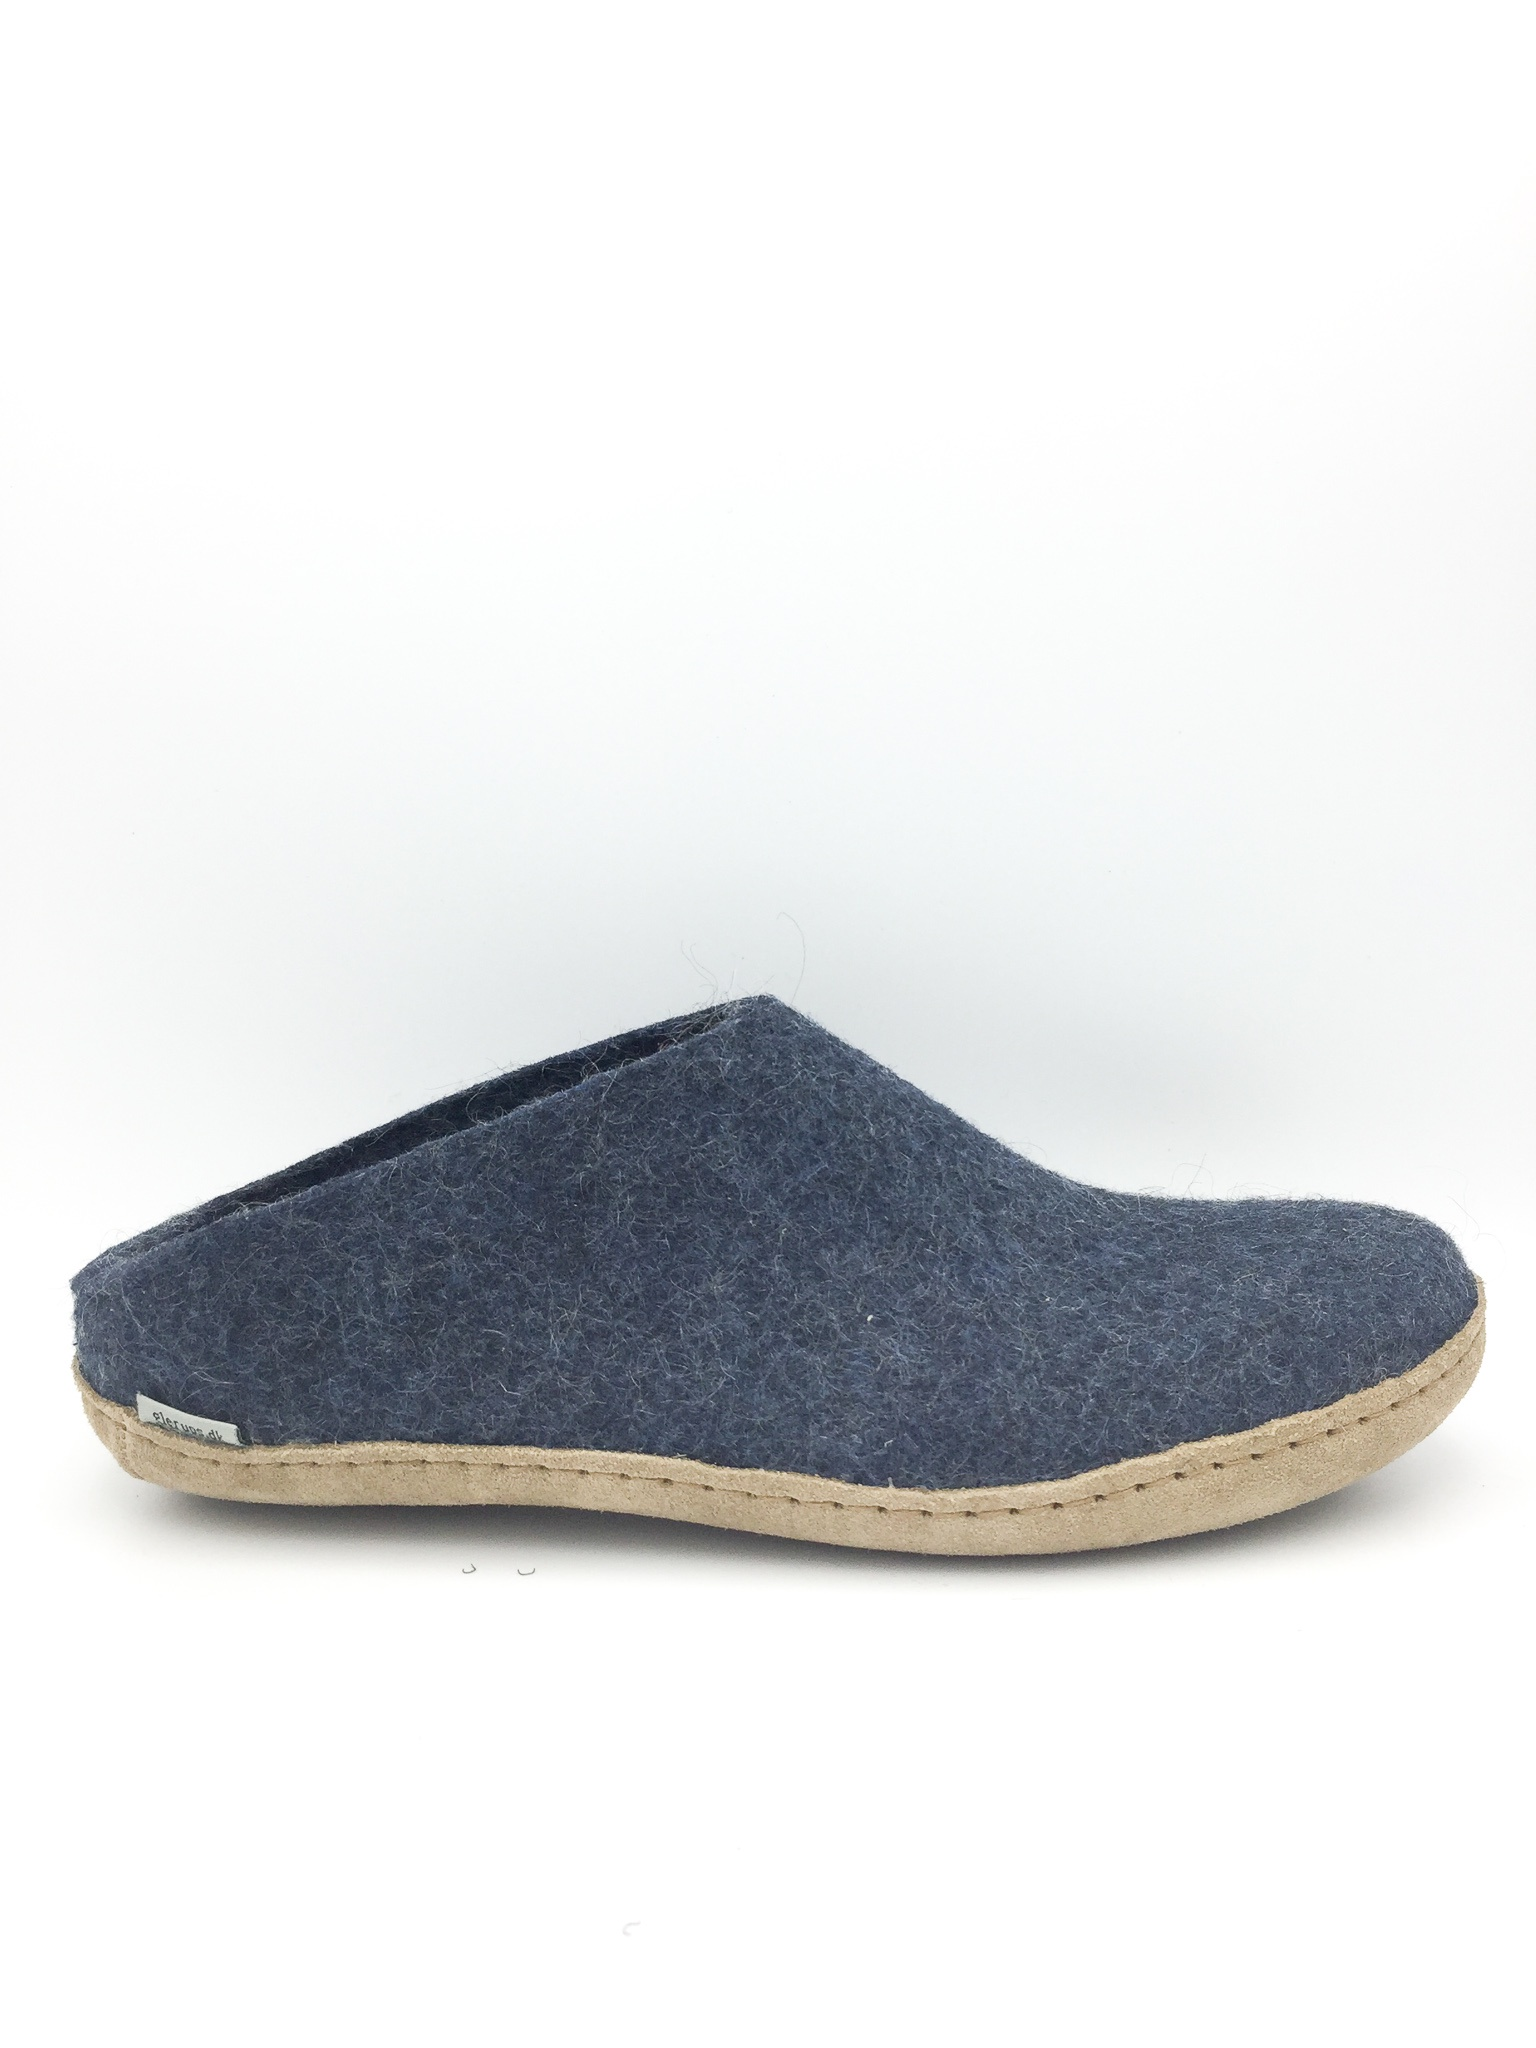 GLERUPS - FELT SLIPPER IN DENIM